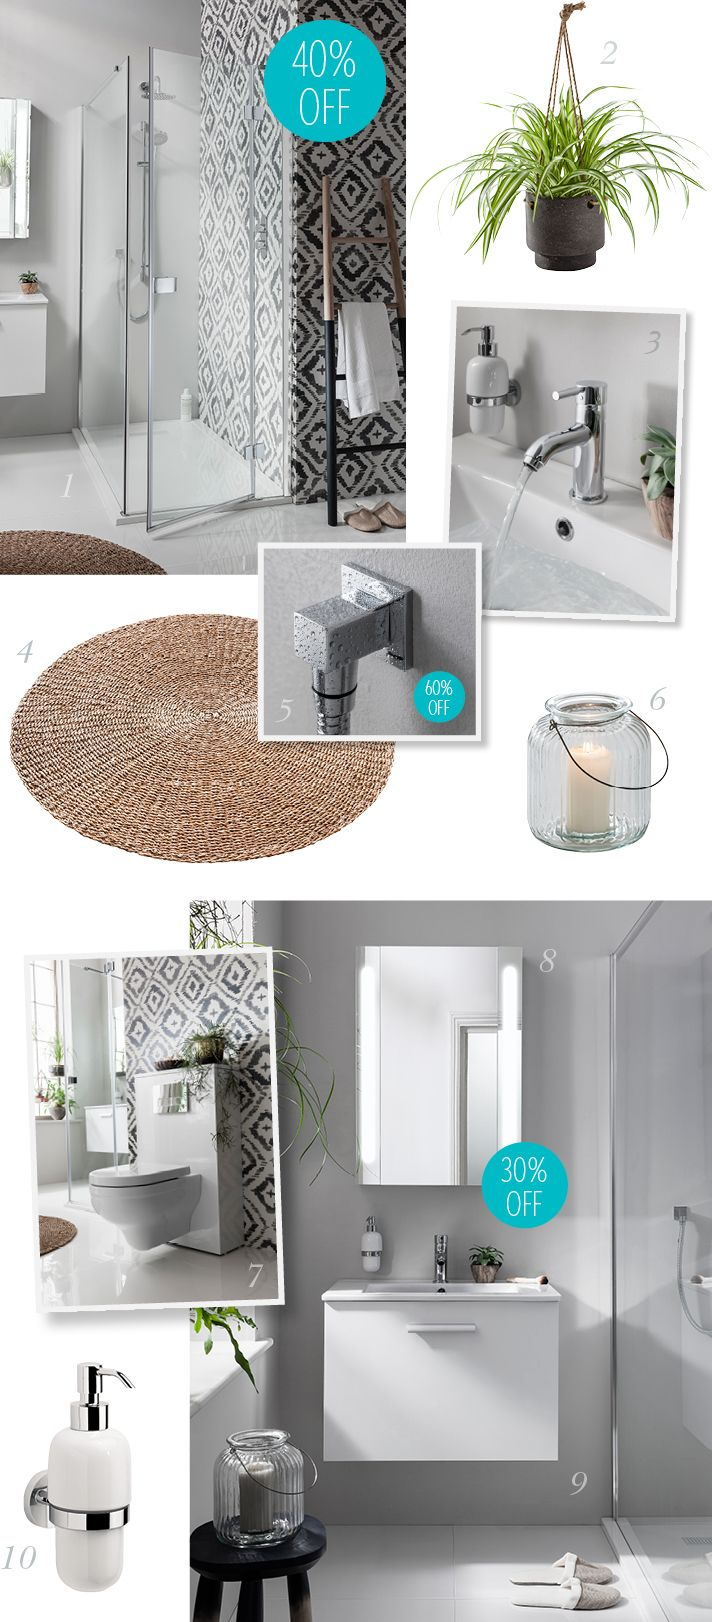 17 best The Luxe Bathroom Look images on Pinterest | Luxurious ...